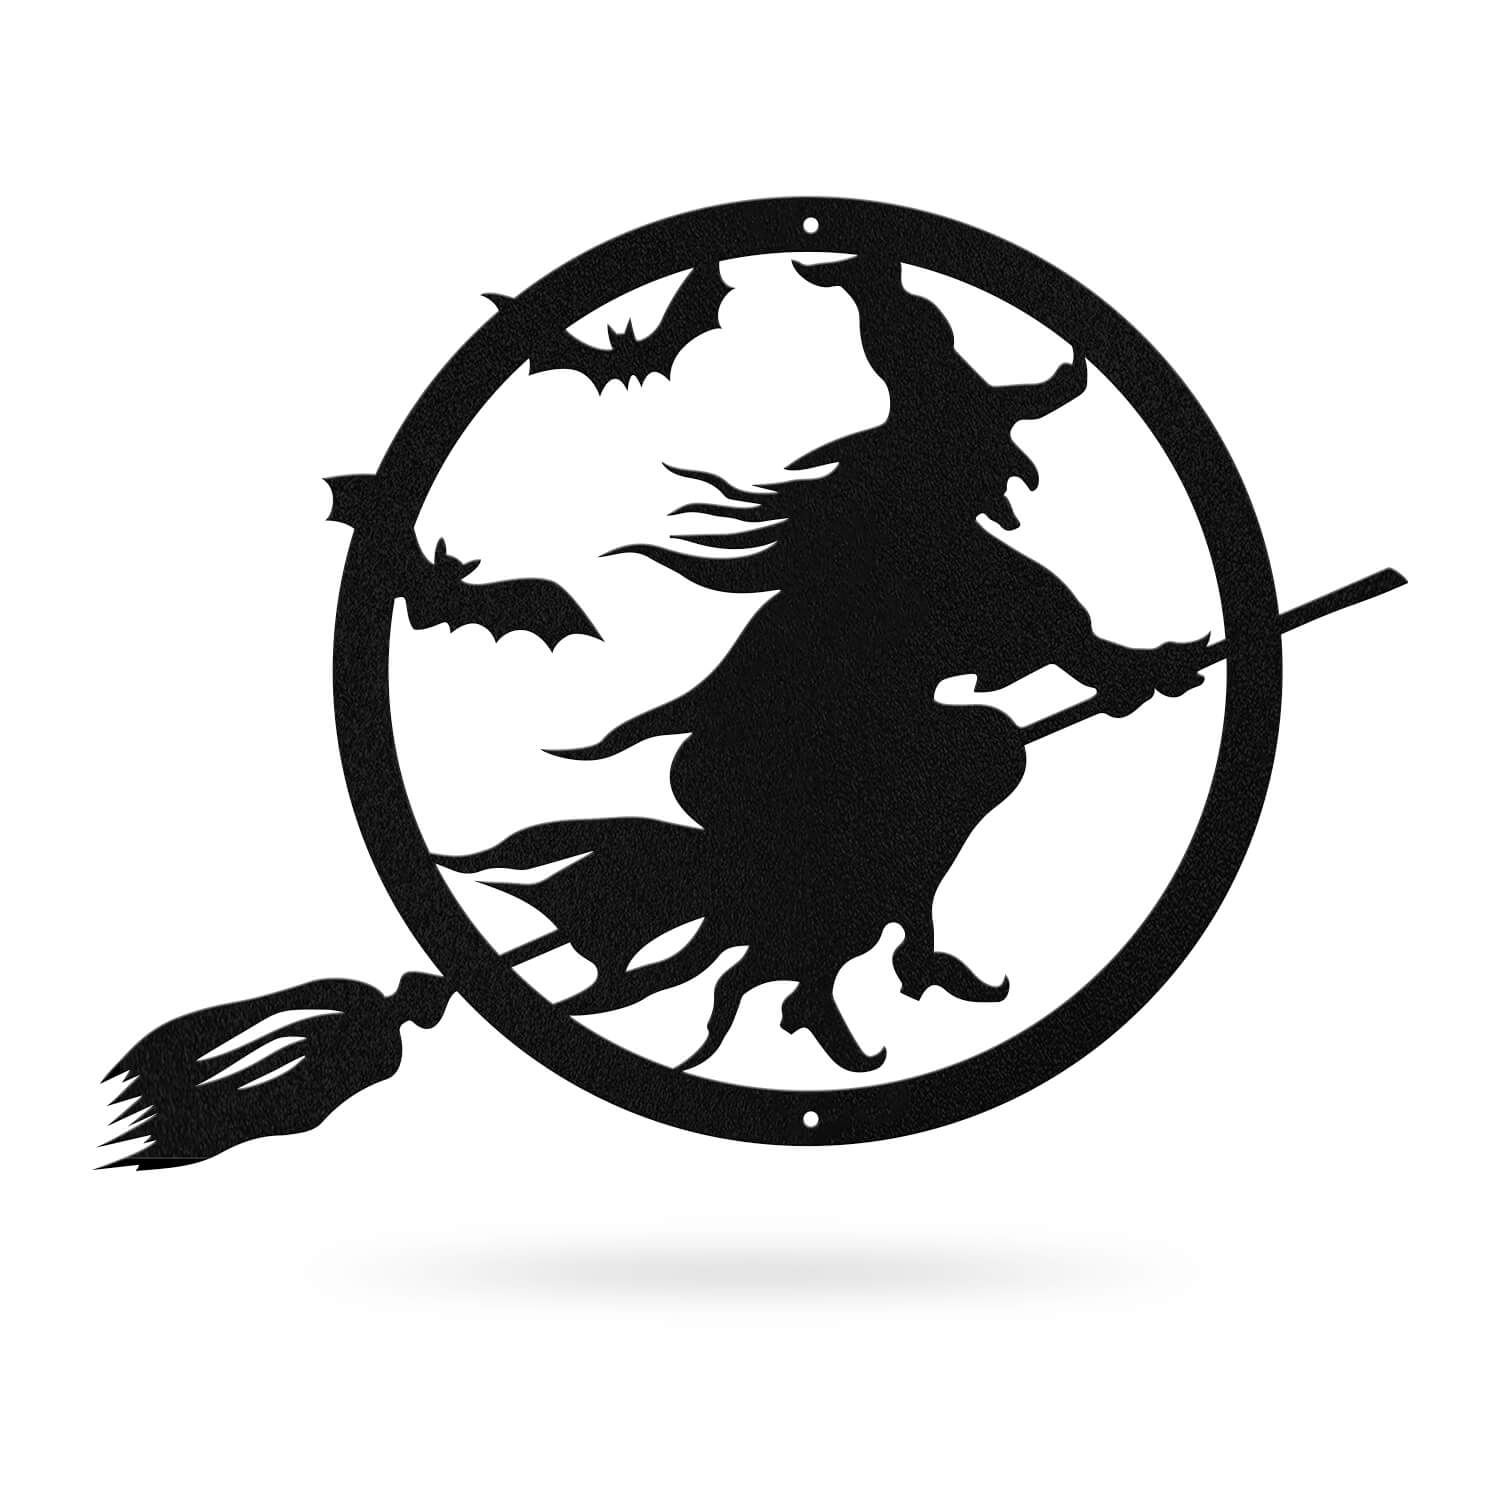 "Halloween Witch Riding Broom 20""x15"" / Black - RealSteel Center"